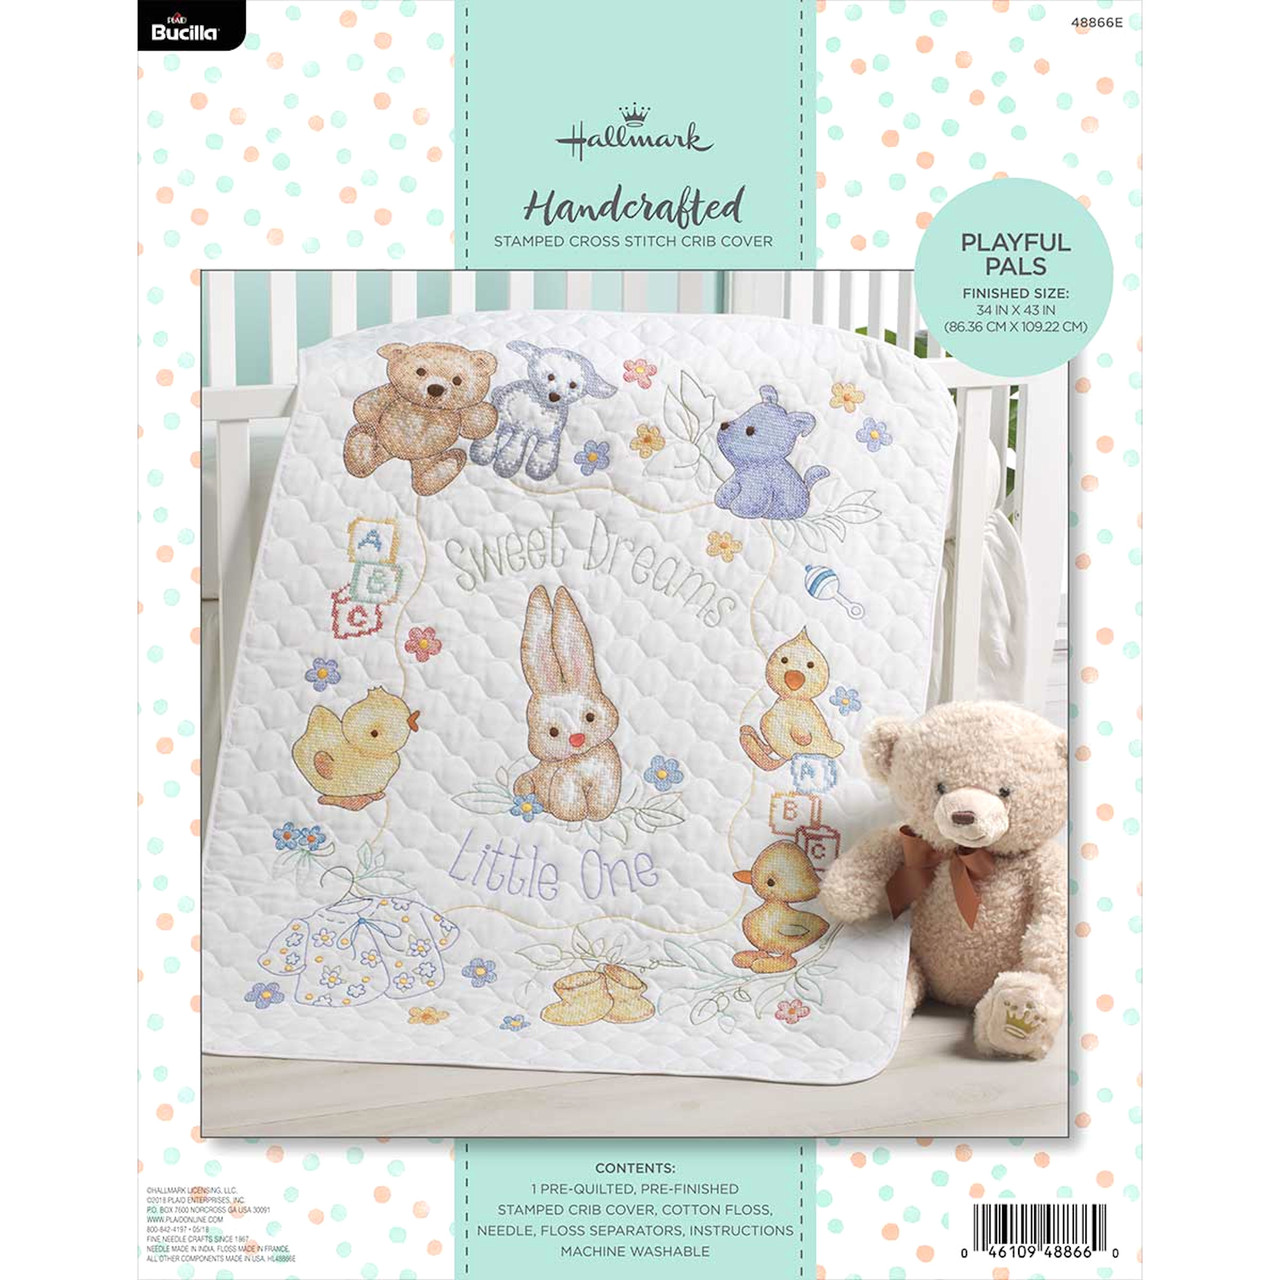 Plaid / Bucilla - Playful Pals Crib Cover